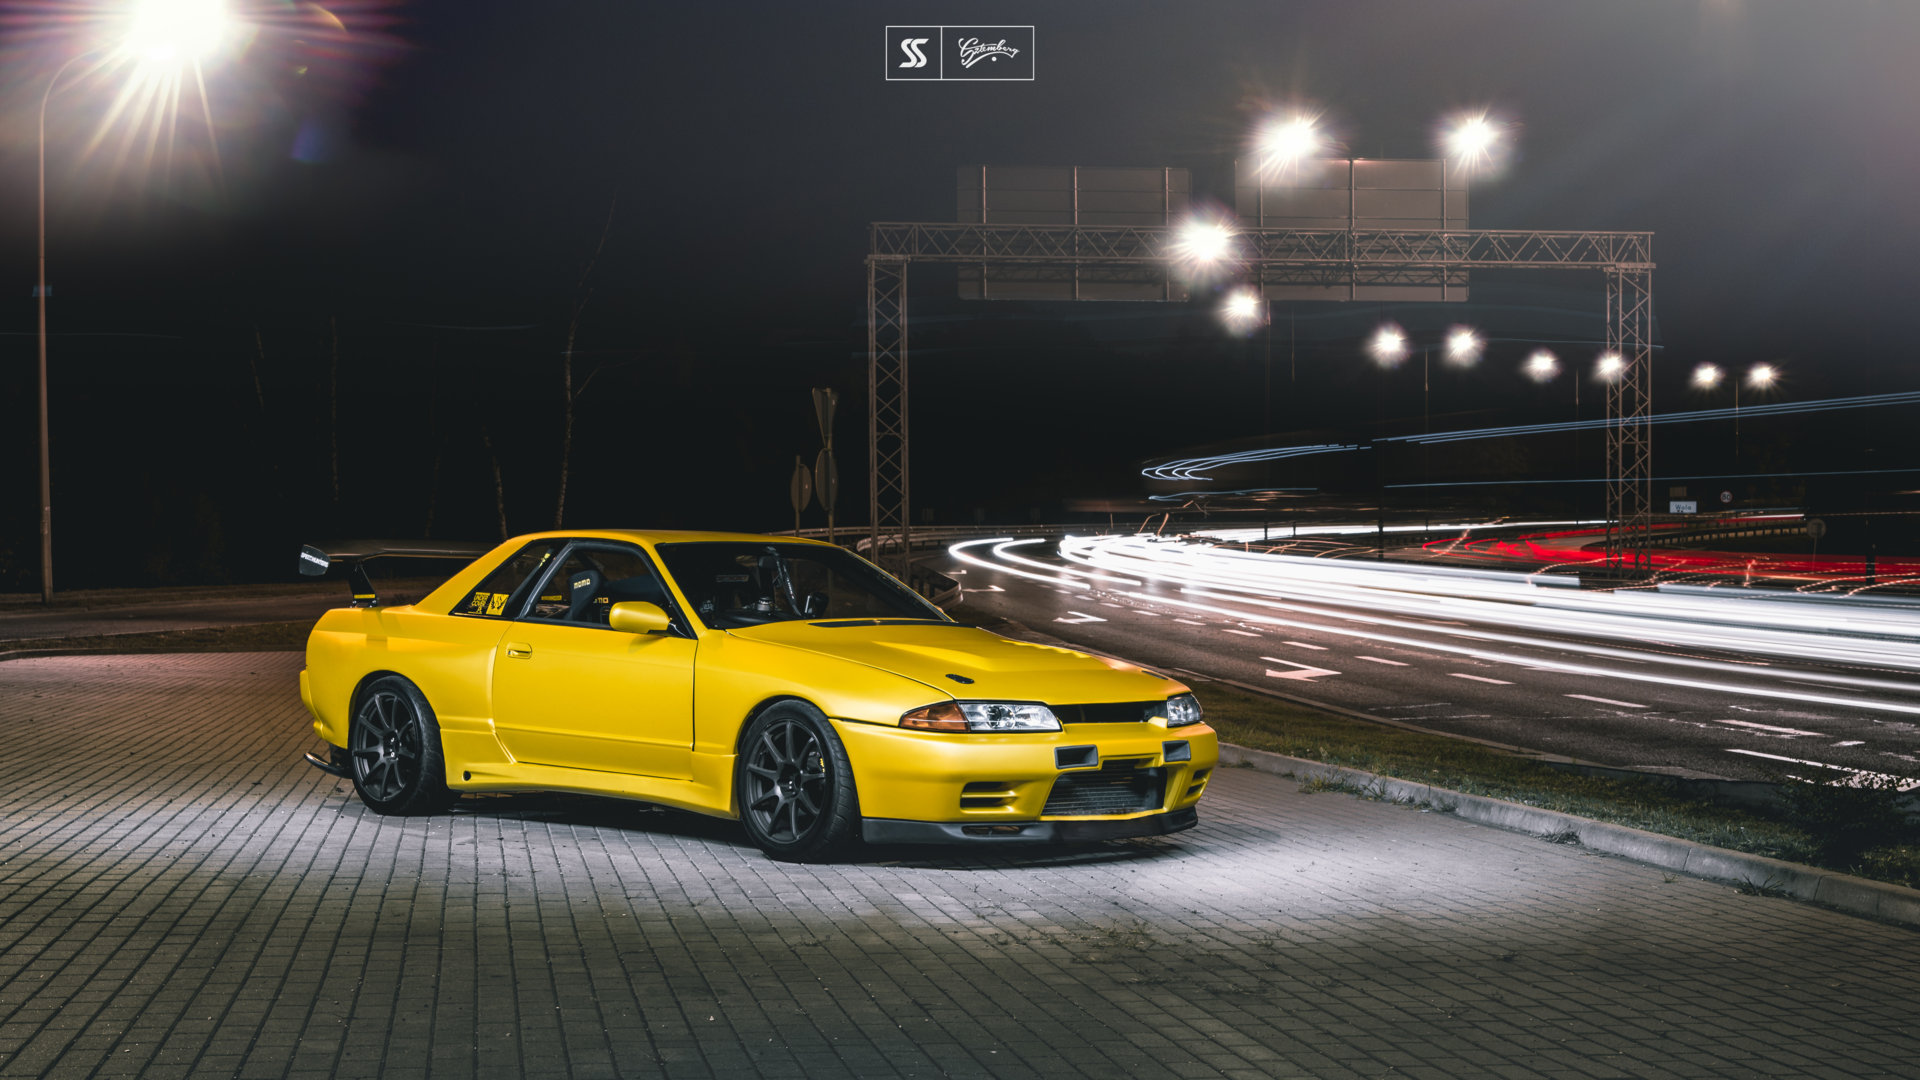 For Sale Nissan Skyline R32 400hp 1 5jz Gts Street And